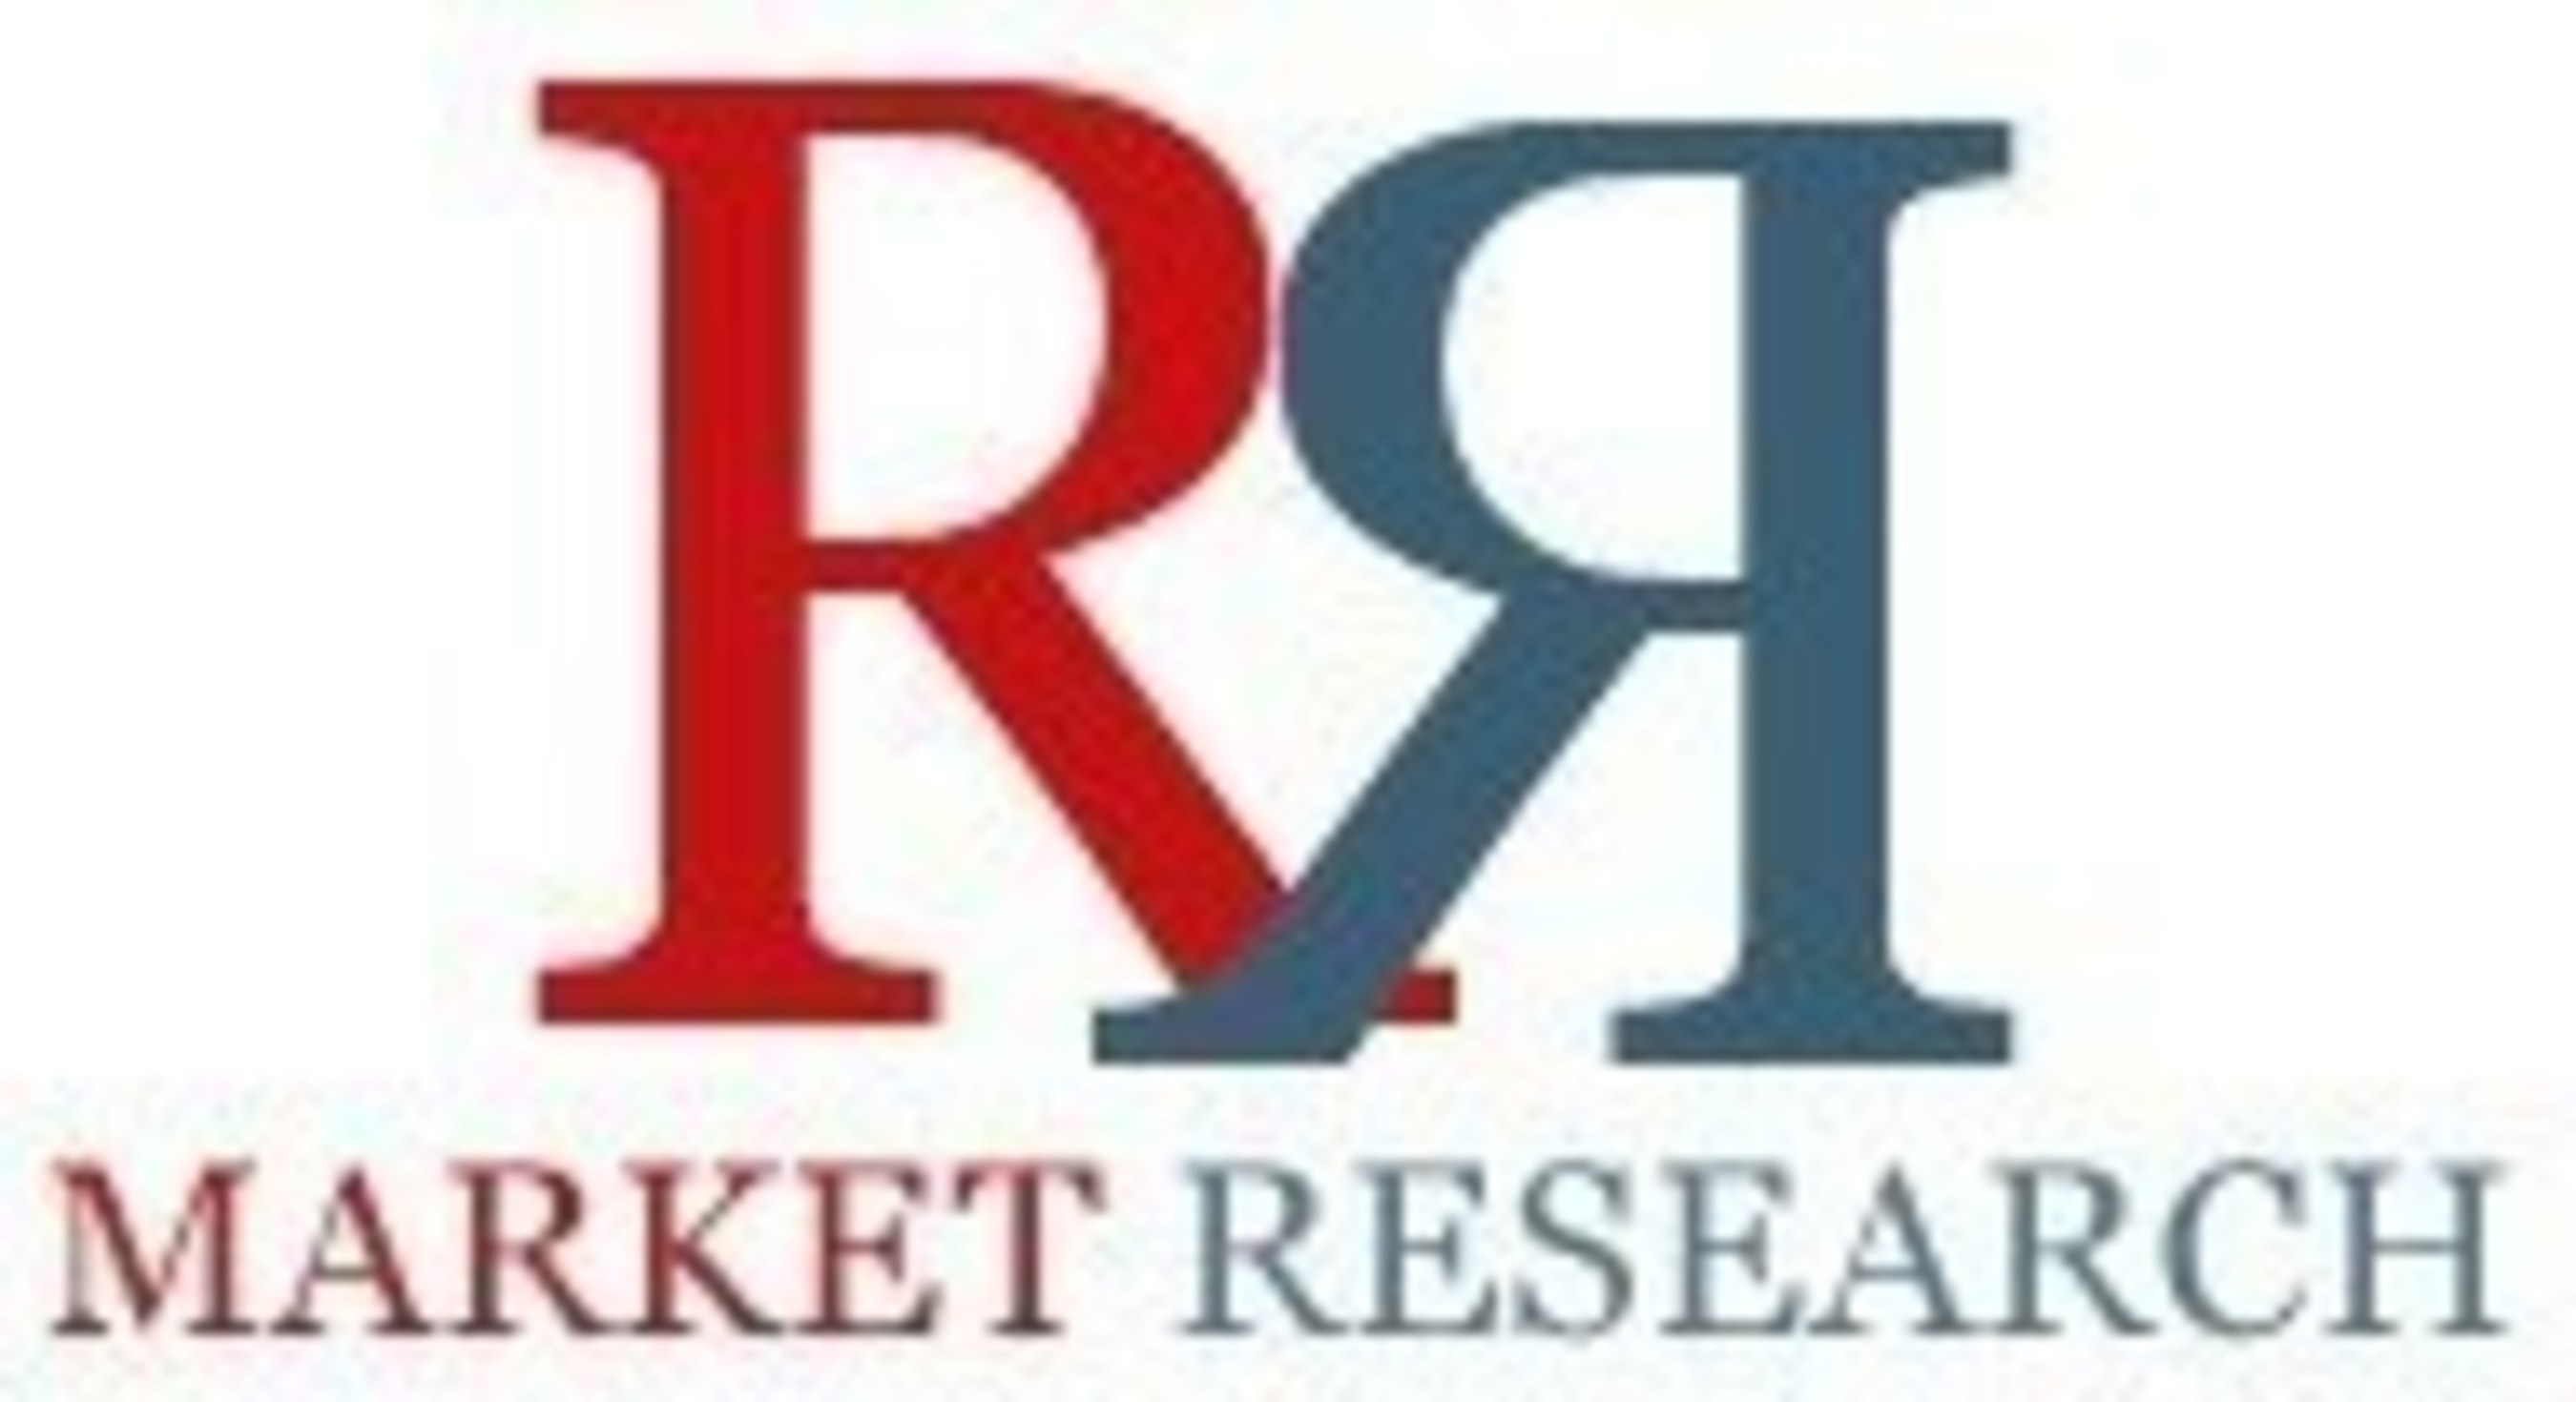 Interactive Tables Market to Grow at 7.77% CAGR Driven by Multi-Touch Technology in Education to 2020